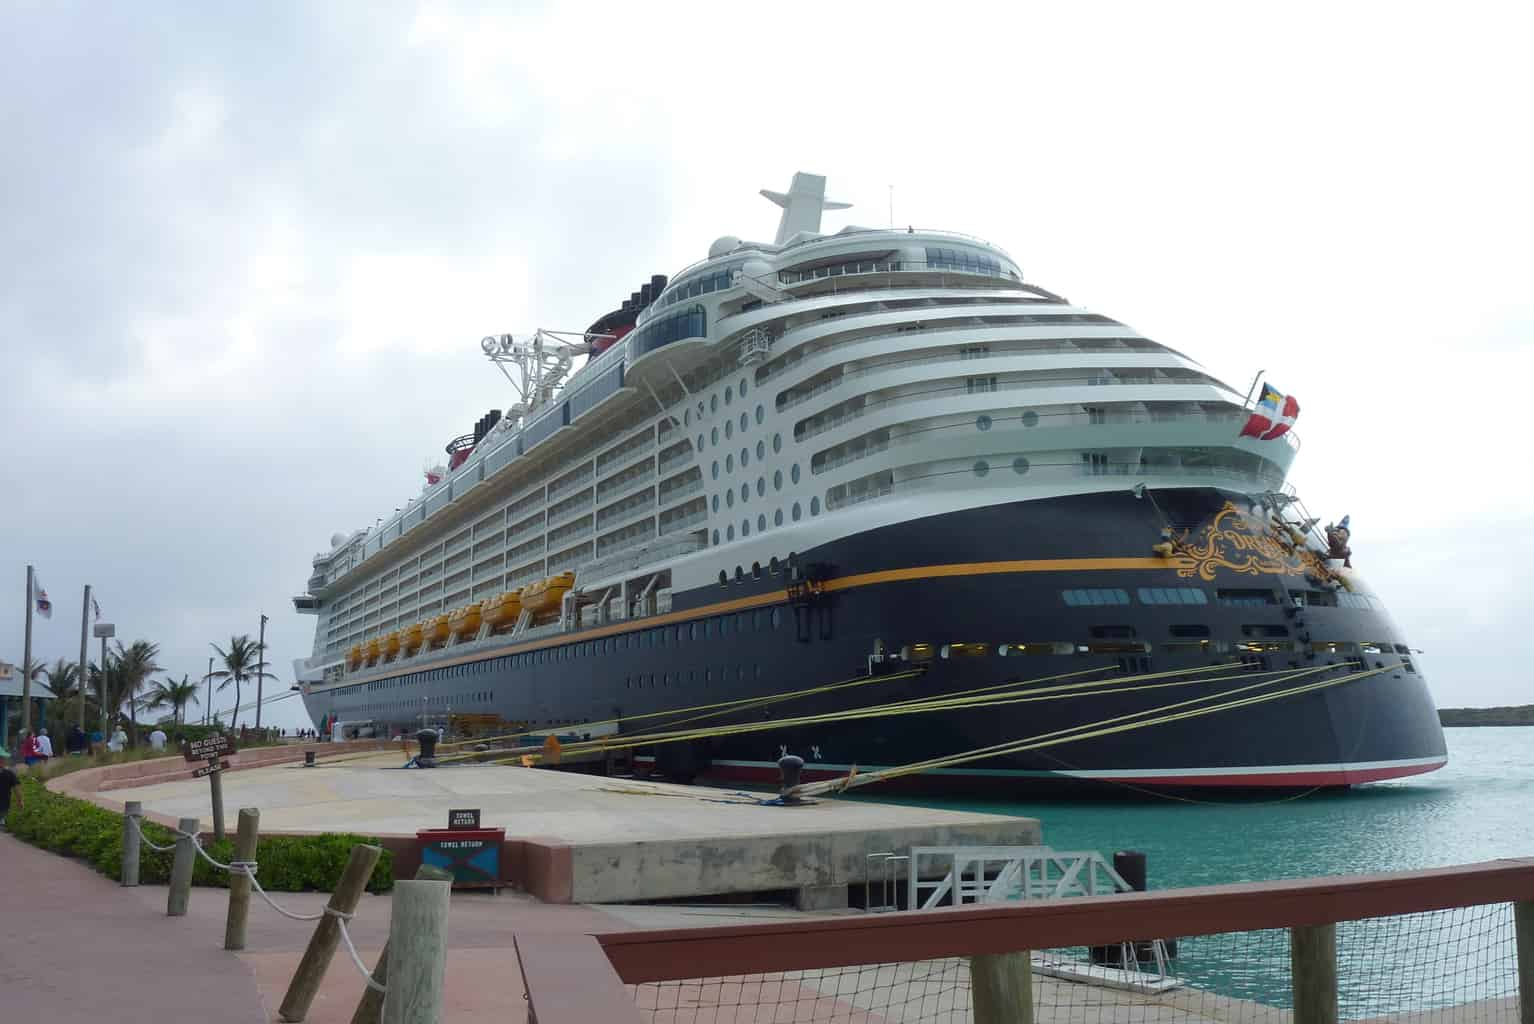 Disney Dream at Castaway Cay - 2012 35/366